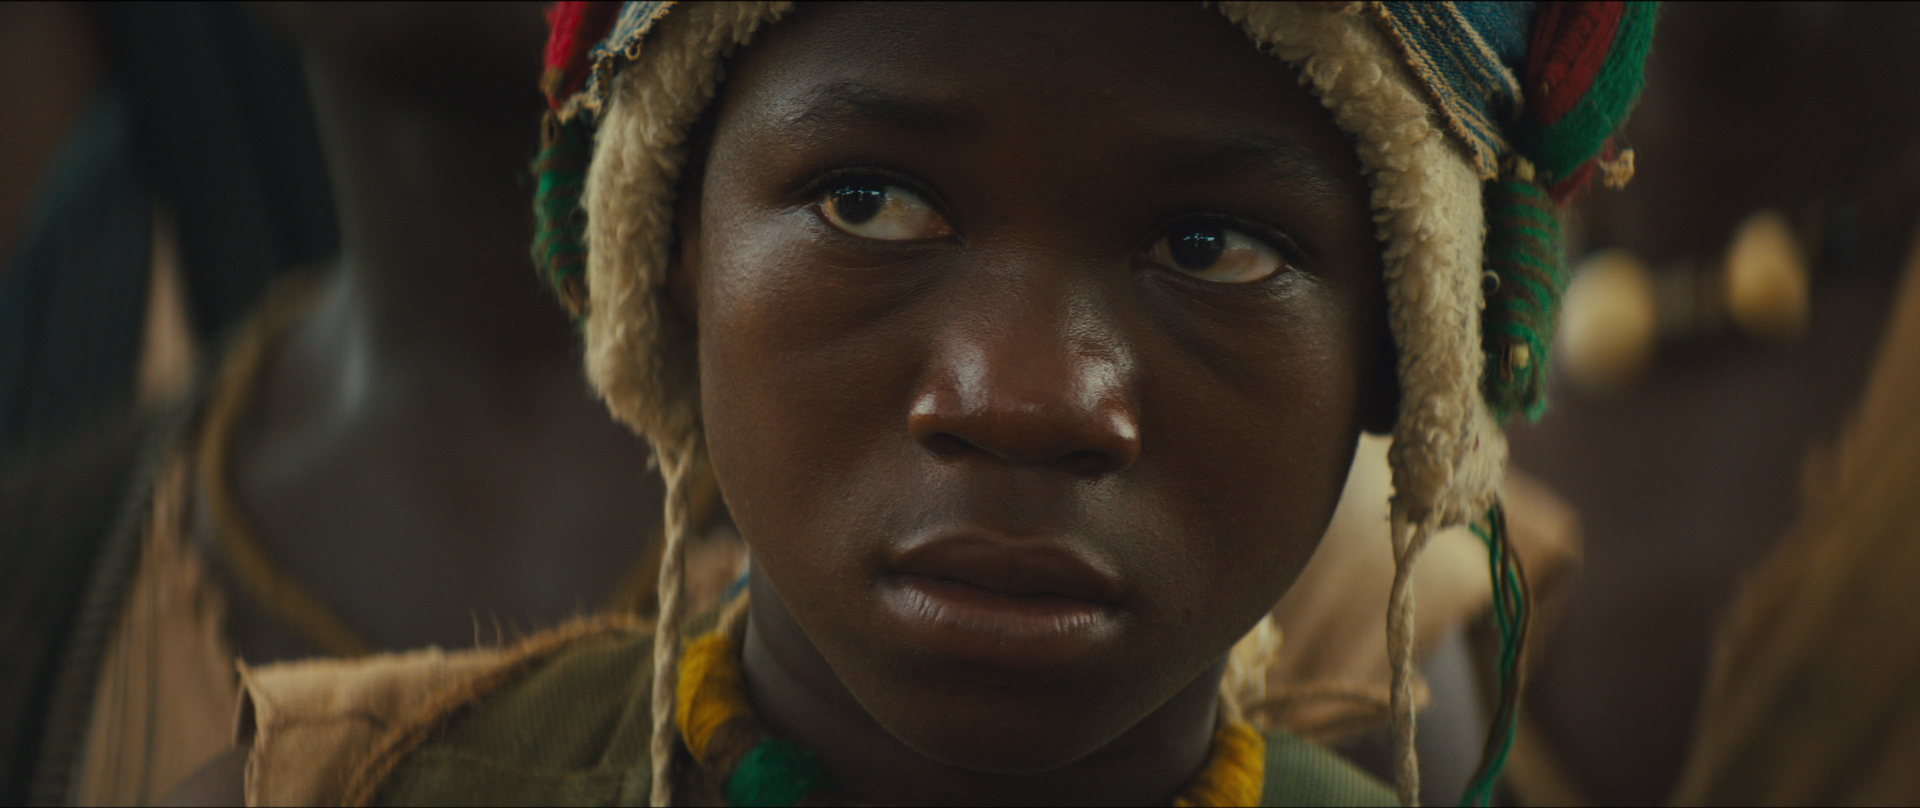 Abraham Attah in Beasts of No Nation (2015)